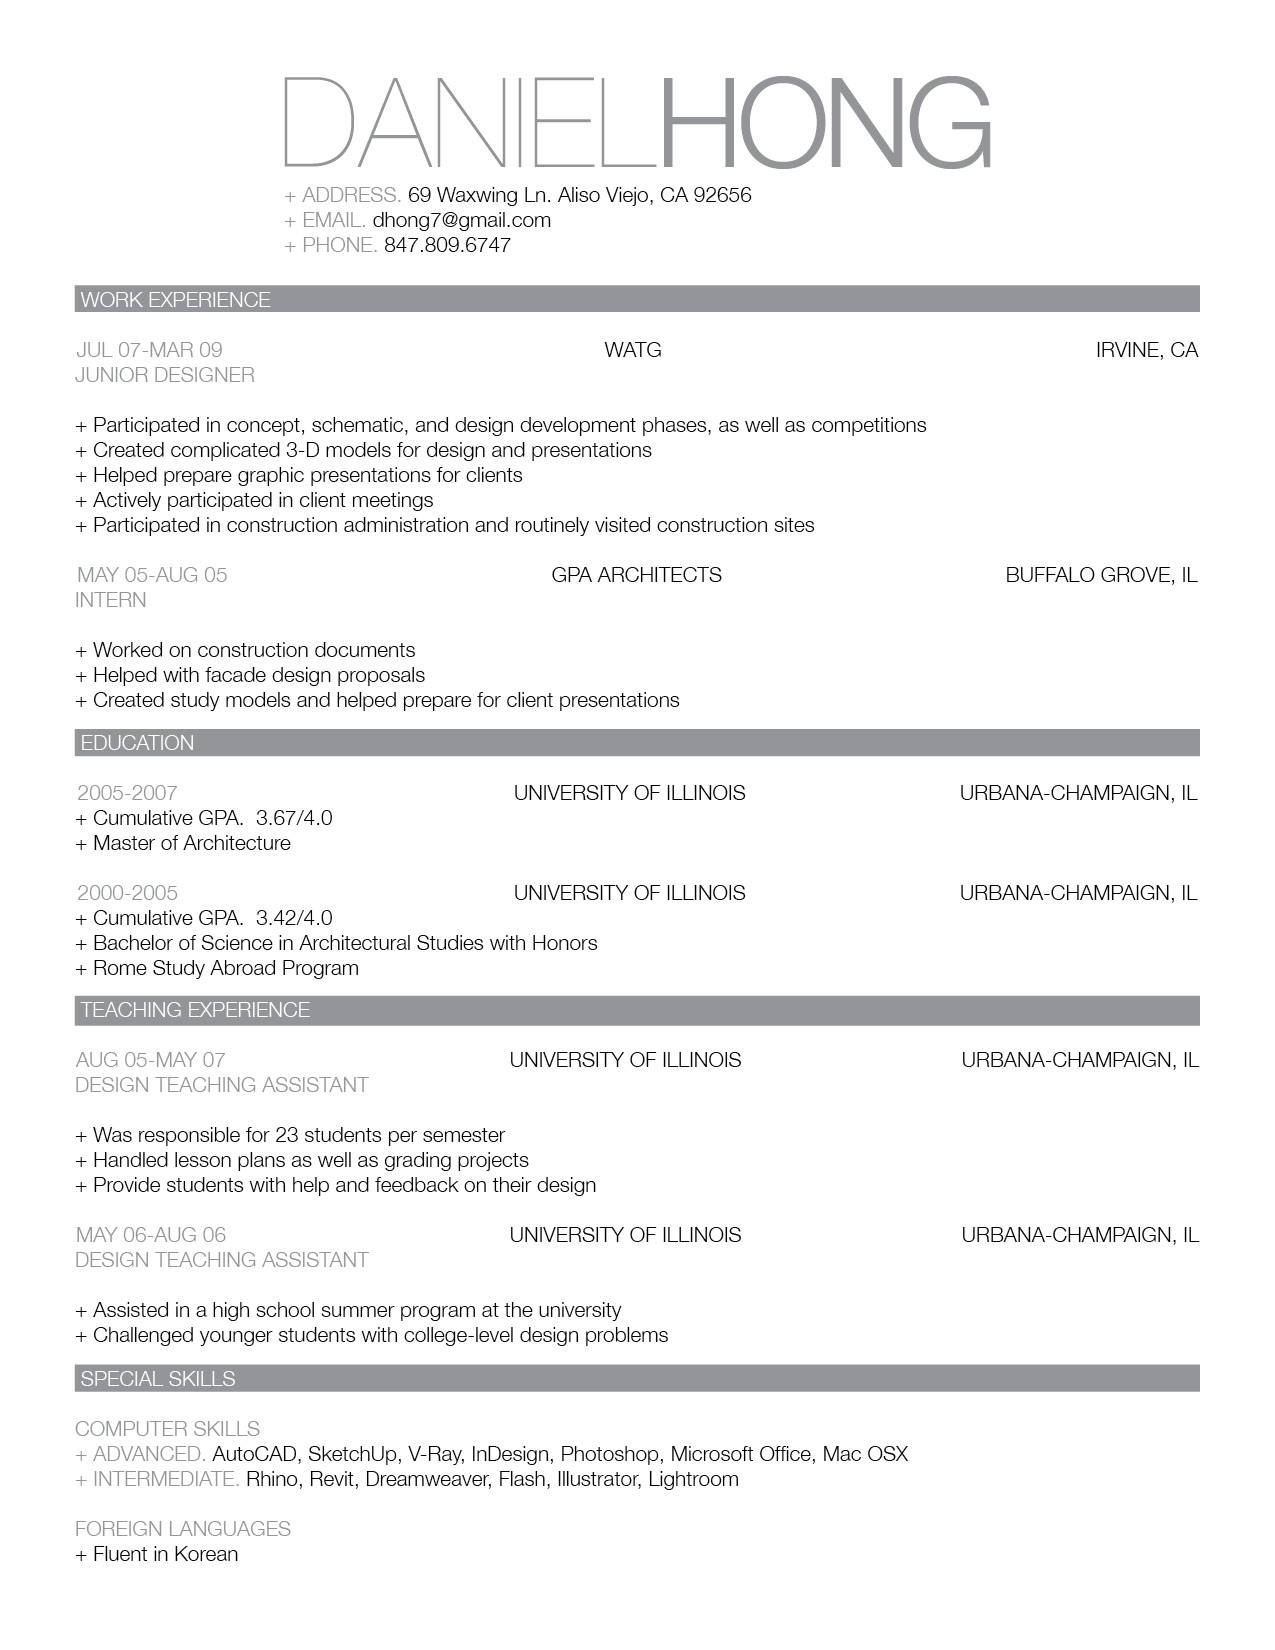 Opposenewapstandardsus  Ravishing Resume Chronological Basic Basic Sample Resume Cover Letter  With Outstanding Simple  With Breathtaking Example Objectives For Resume Also Account Receivable Resume In Addition Key Qualifications For Resume And Resume For Medical School As Well As What Font Should My Resume Be In Additionally Professional Summary For A Resume From Writeupdonwebhomeipnet With Opposenewapstandardsus  Outstanding Resume Chronological Basic Basic Sample Resume Cover Letter  With Breathtaking Simple  And Ravishing Example Objectives For Resume Also Account Receivable Resume In Addition Key Qualifications For Resume From Writeupdonwebhomeipnet